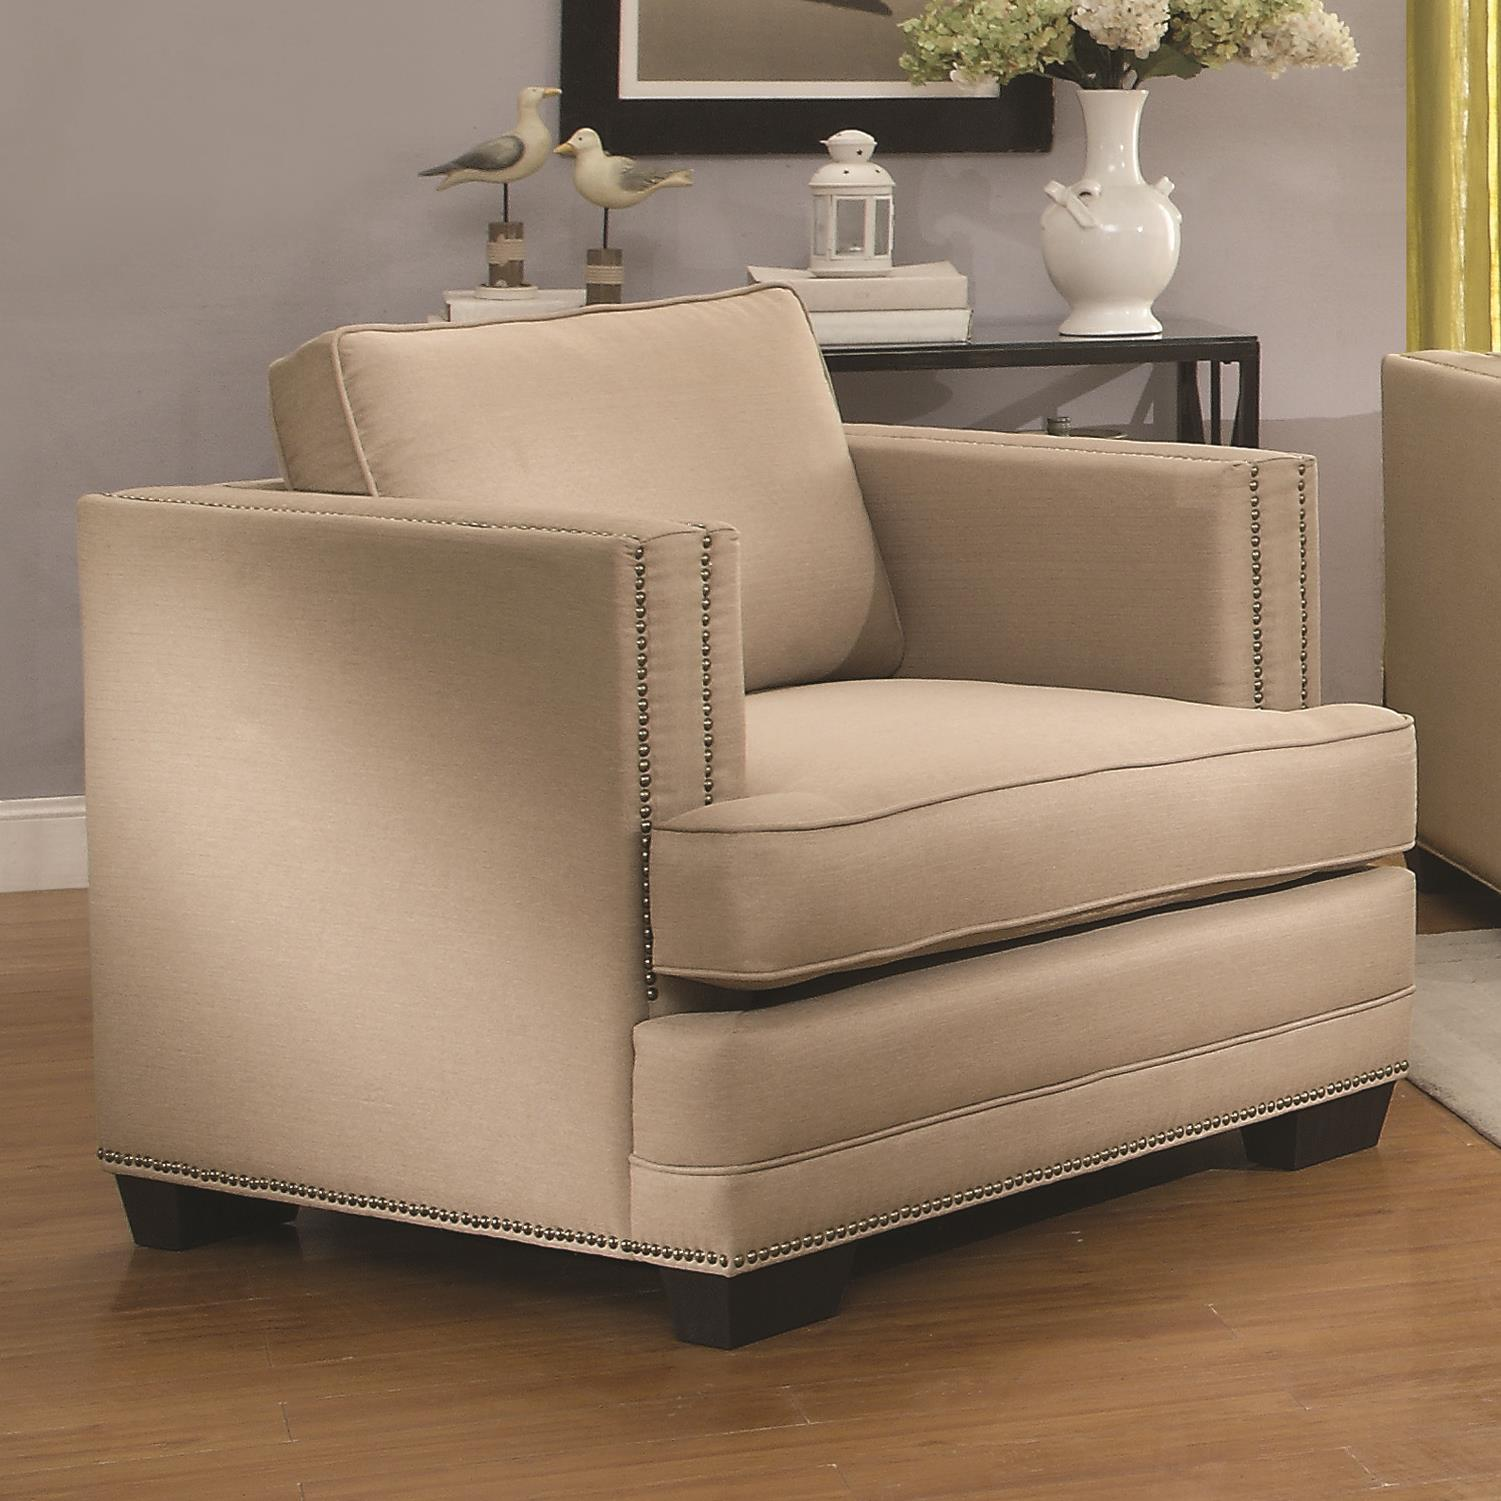 deconstructed shelter arm sofa review spectra home portland rosario chair with style arms quality furniture